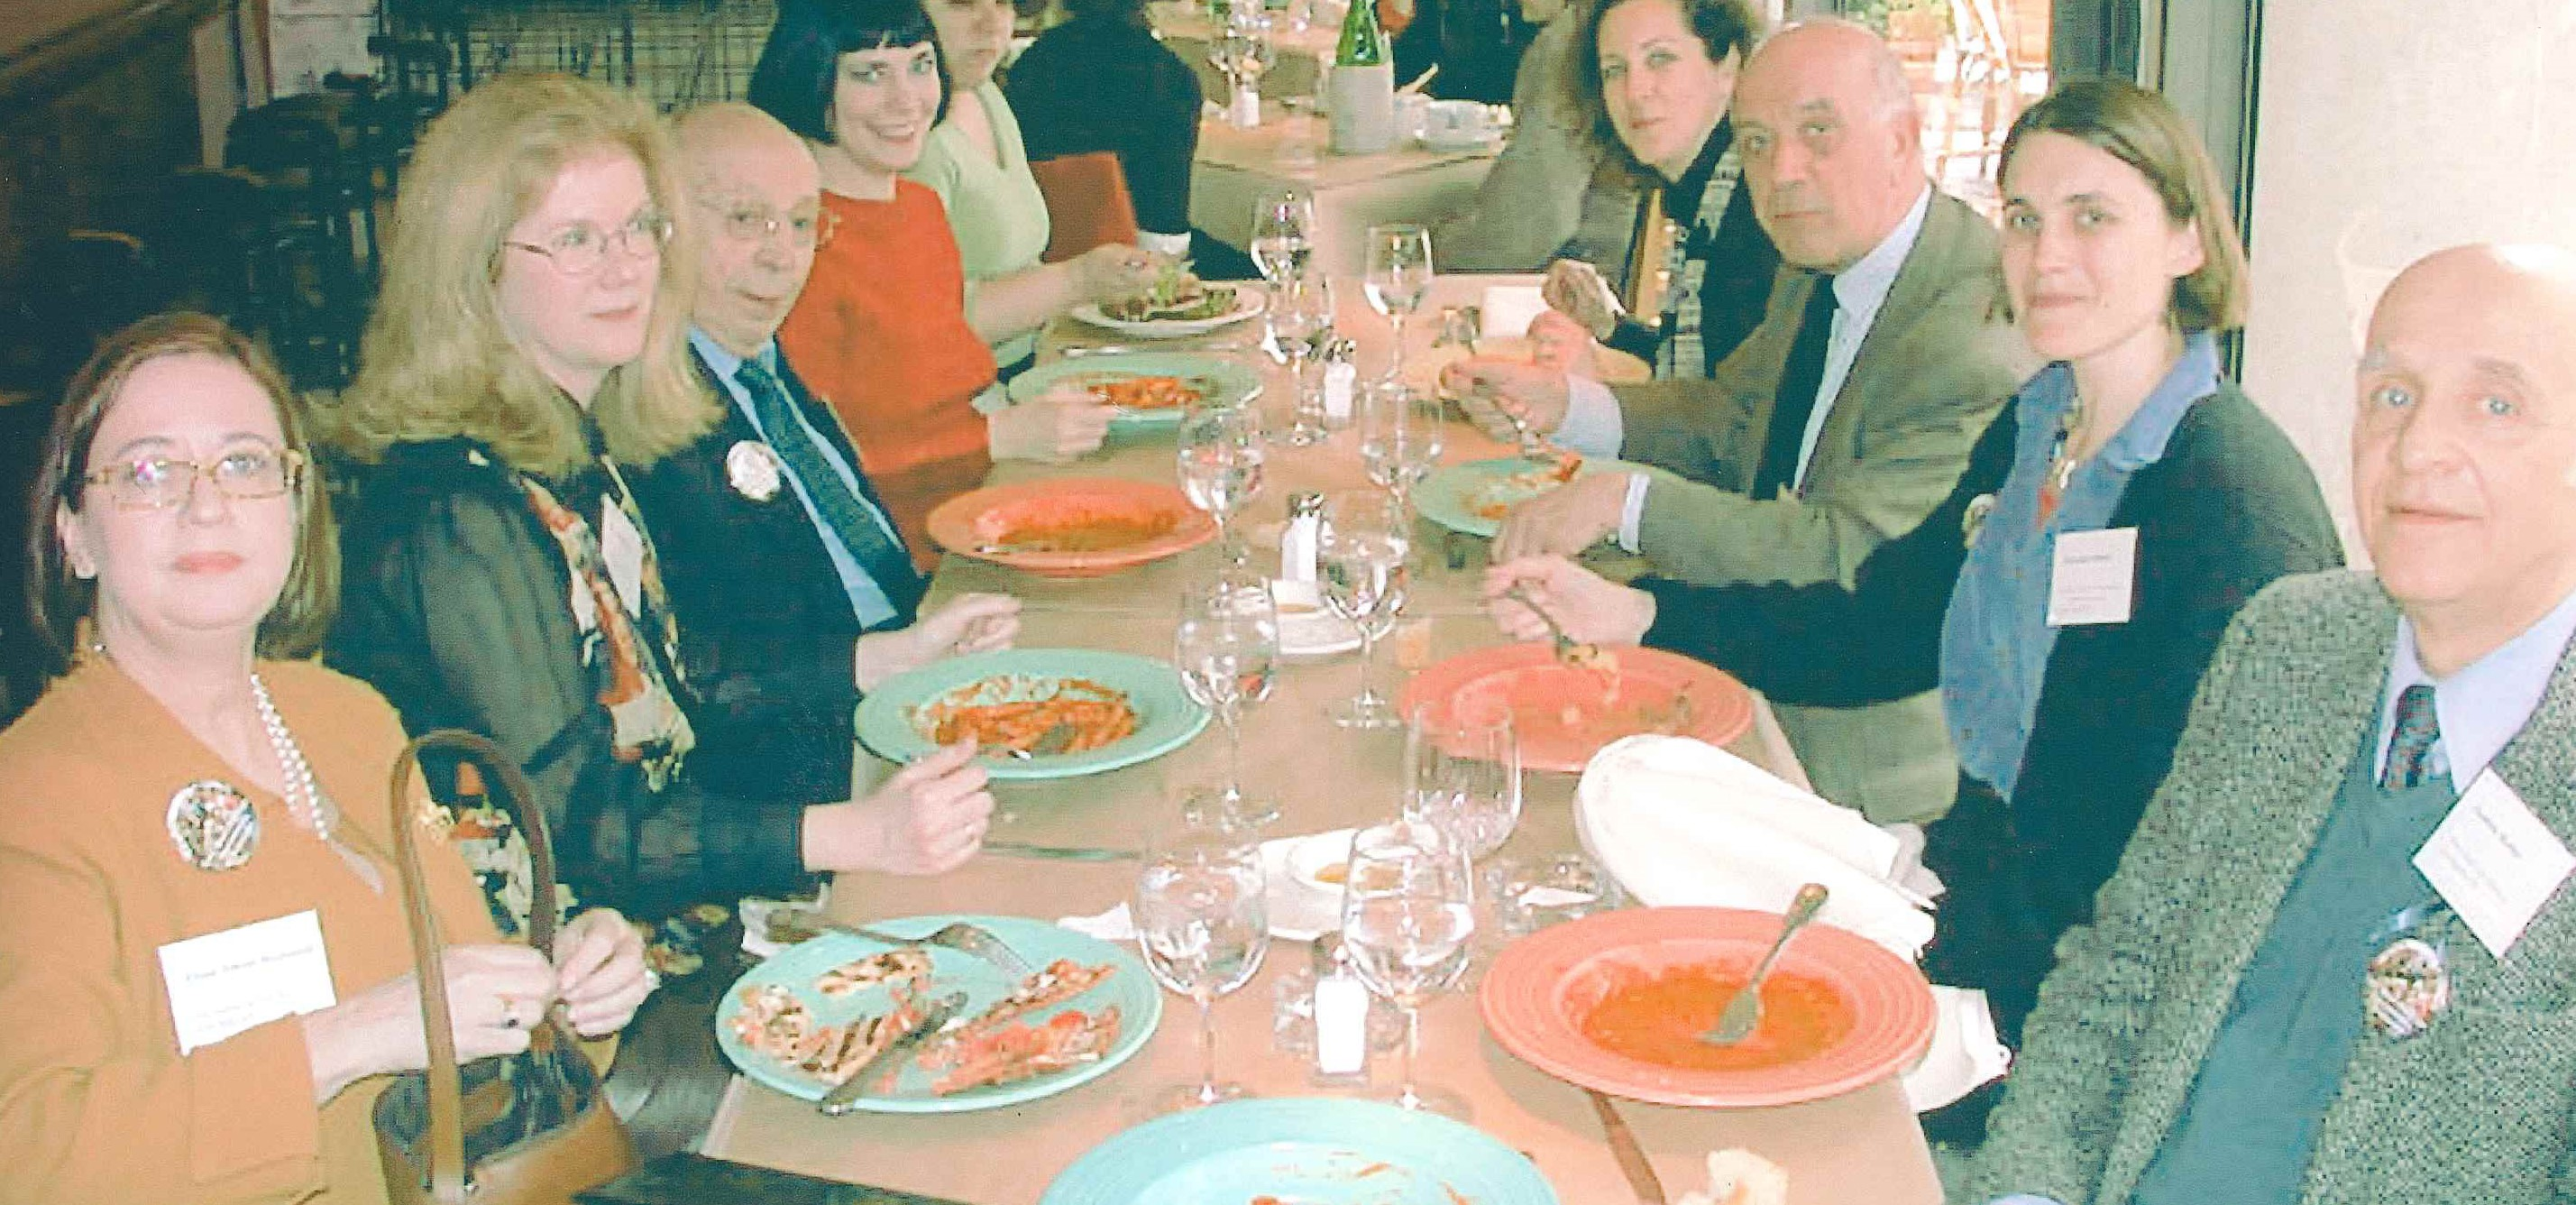 Lunch at a Yale conference in 2002. From Left to Right: Dianne Dwyer Modestini (co-interviewer), JHS (interviewer), Mario Modestini (interviewee), Jeanne McKee Rothe (co-interviewer), Lisa Ackerman (formerly of the Kress Foundation), Wendy Samet, (paintings conservator), Michel Laclotte (former head of conservation at the Louvre), Francesca Bewer (researcher and author of the history of conservation of the Fogg Art Museum), Andrea Rothe (former head of paintings conservation at the Getty Museum, and intervi